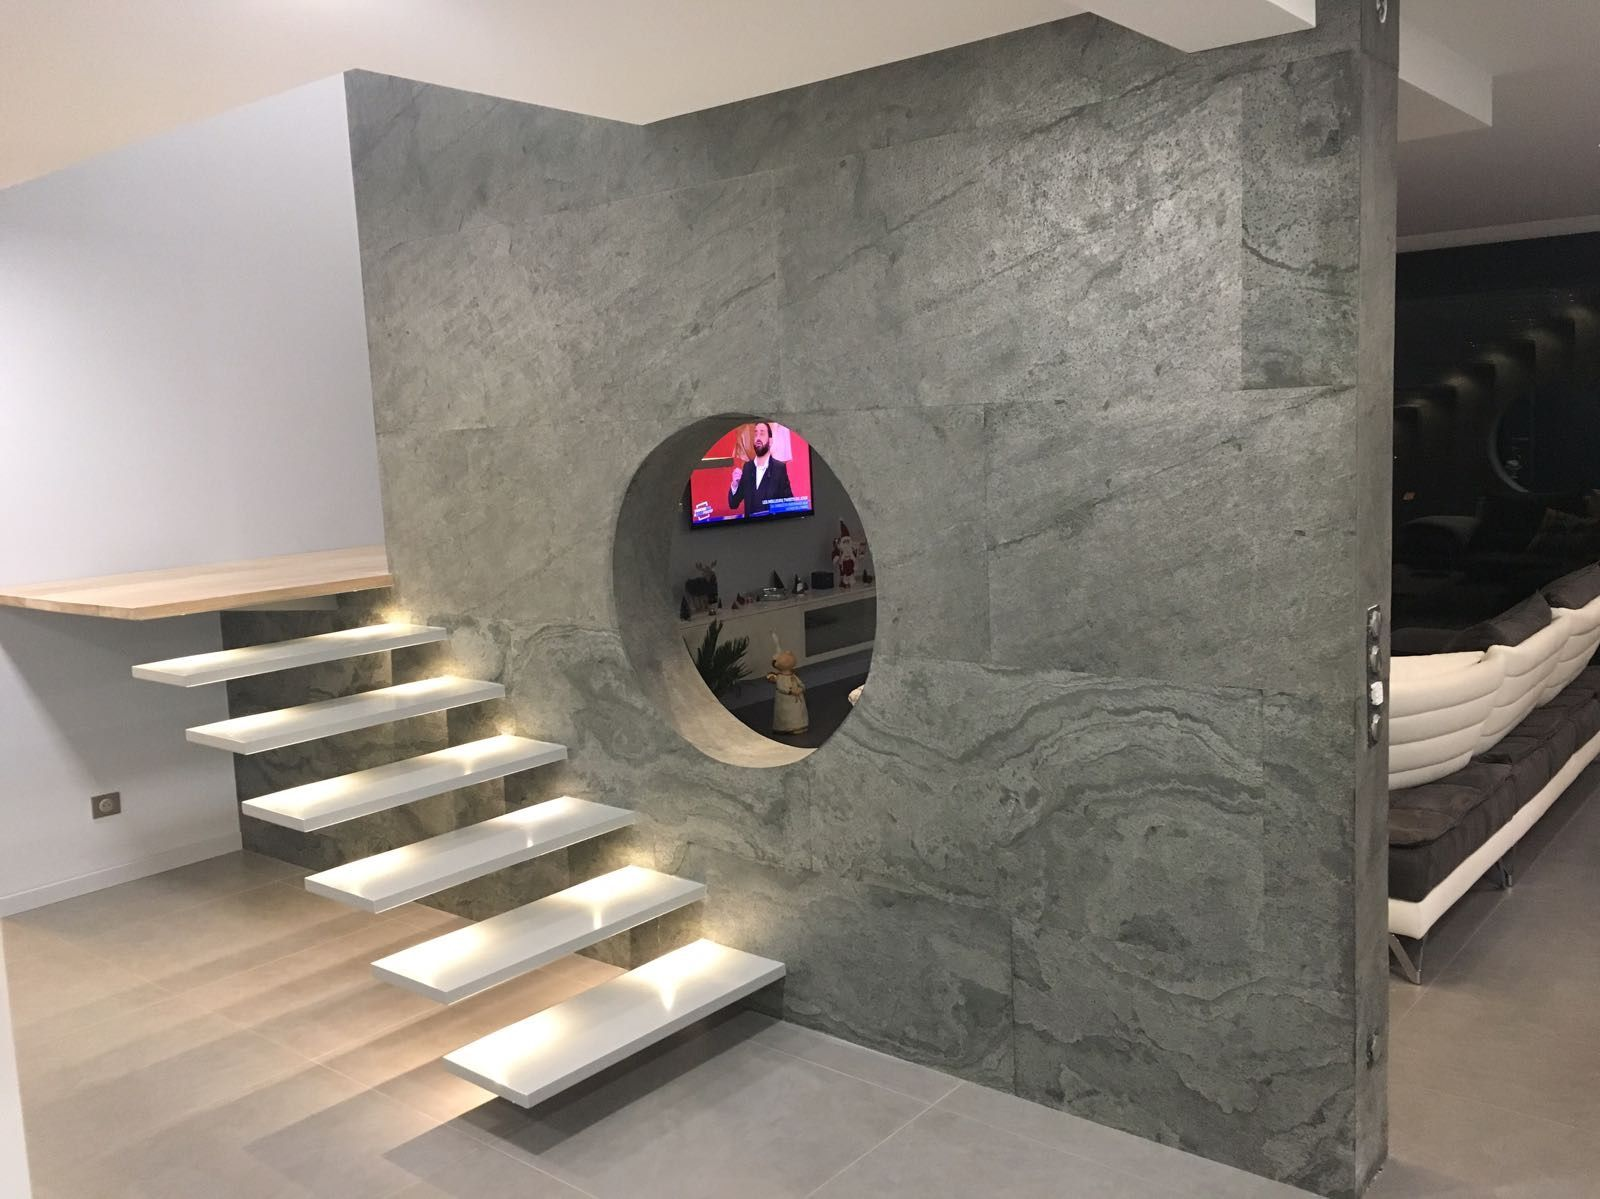 A room divider made with slate lite the paperthin real stone veneer